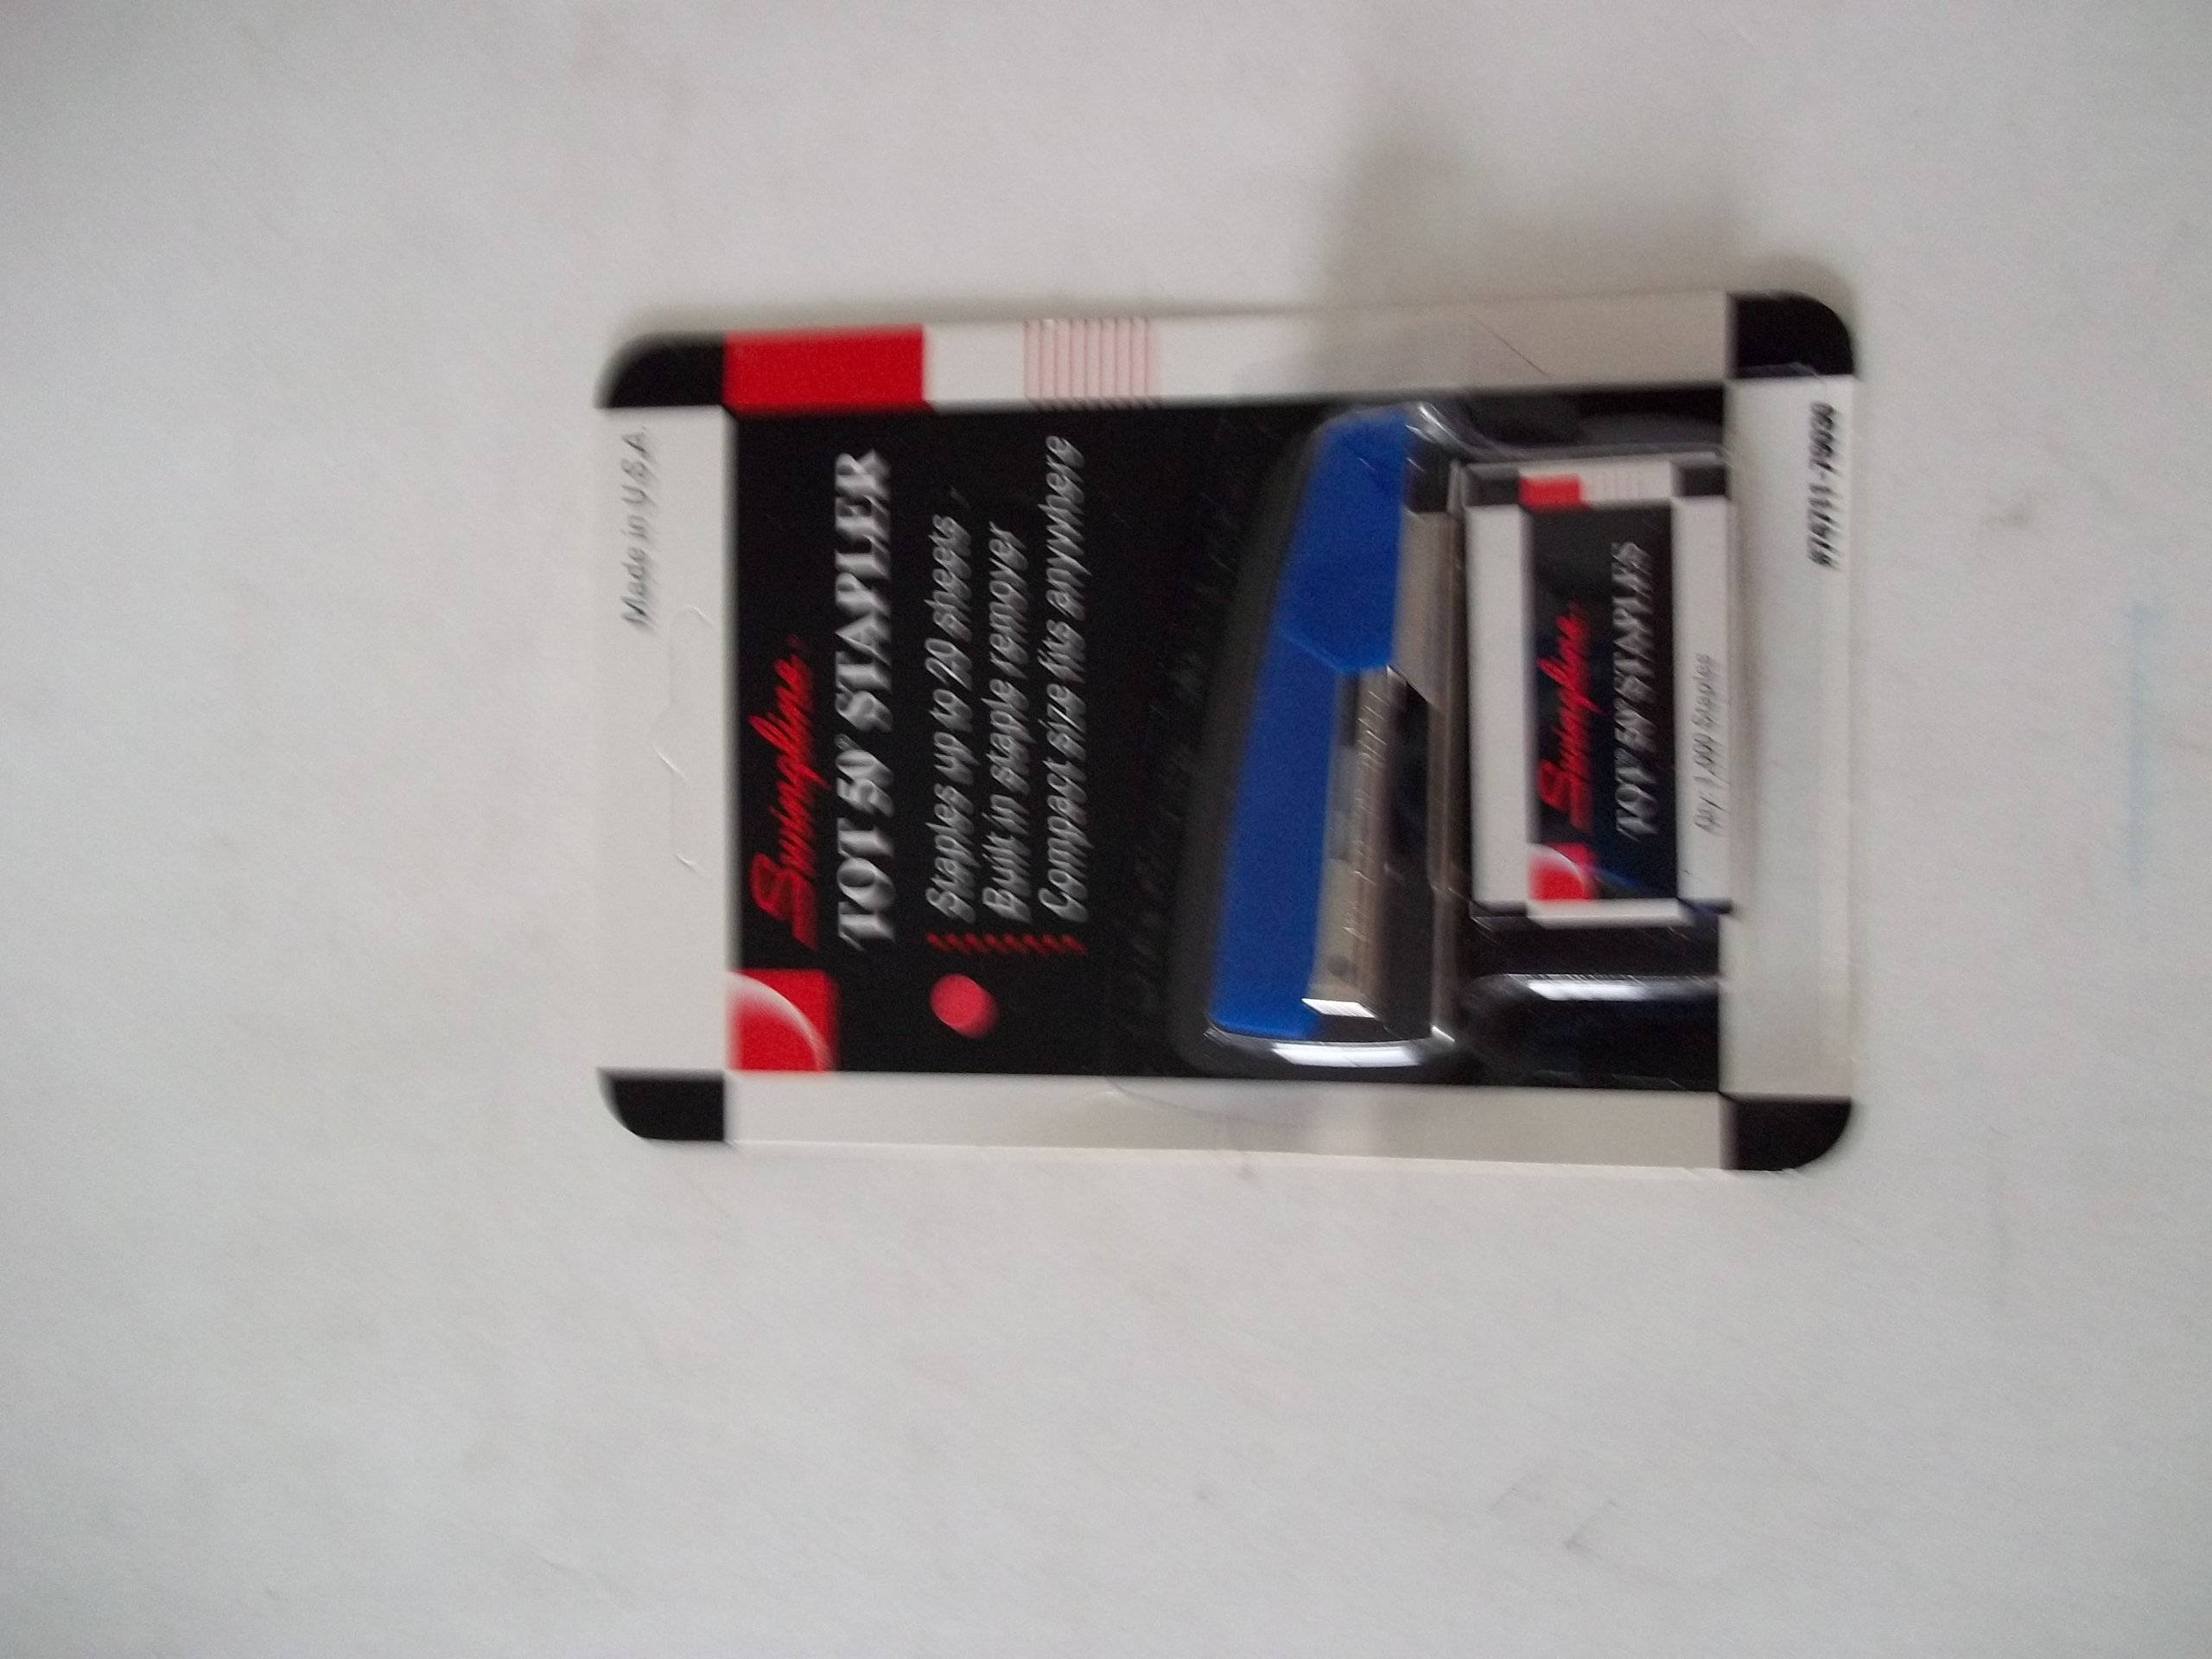 Swingline Tot 50 Stapler Blue Compact 1000 No. 10 Staples Included Made in USA Limit 1 Per Customer